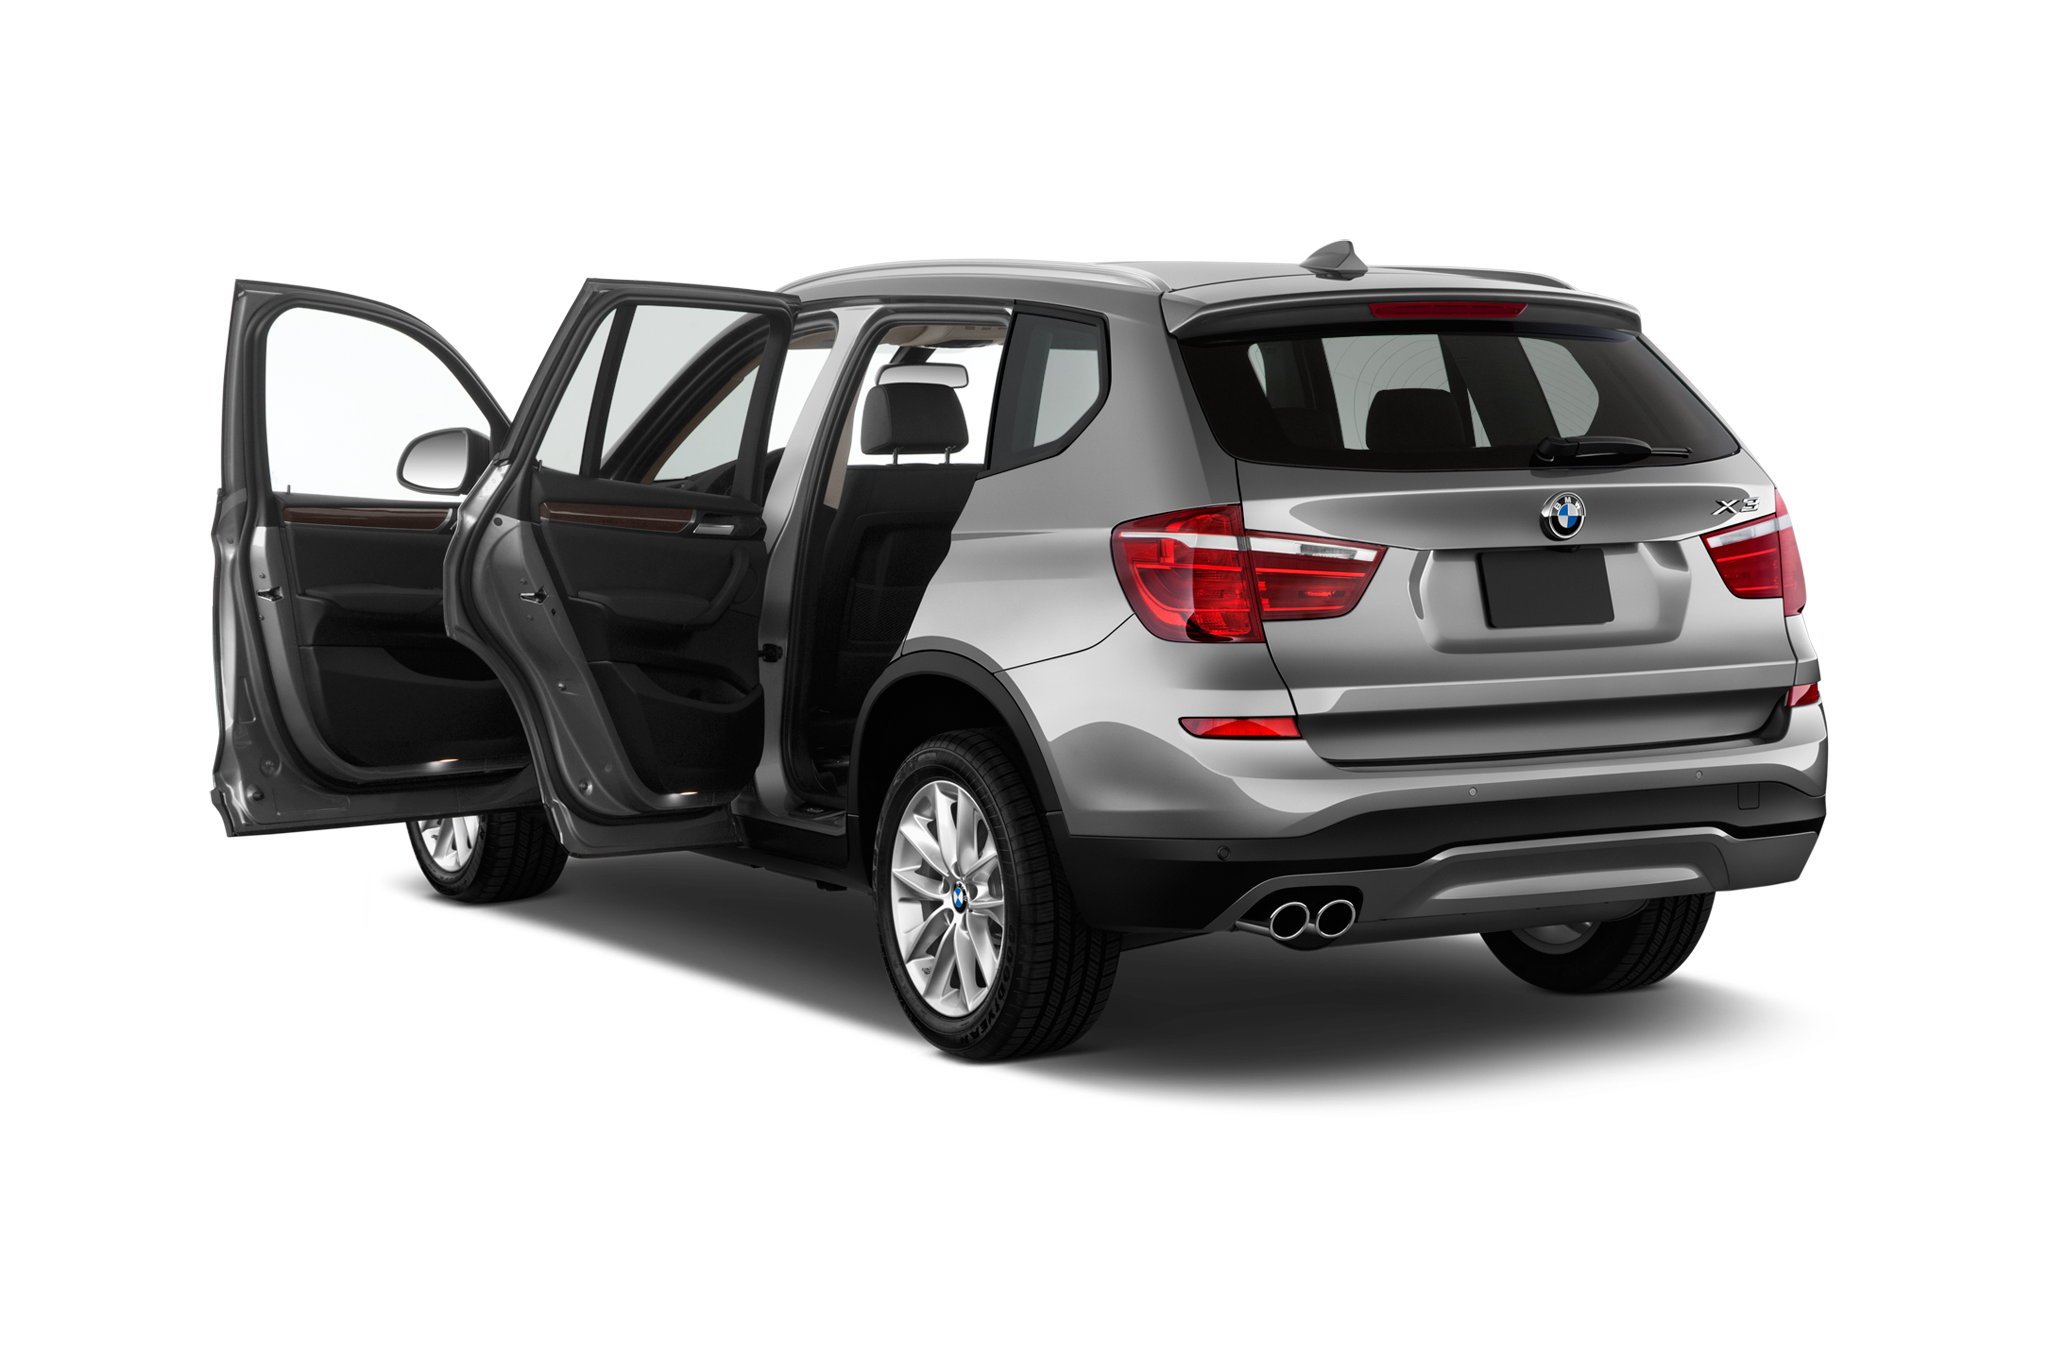 bmw x3 road test review automobile magazine. Black Bedroom Furniture Sets. Home Design Ideas